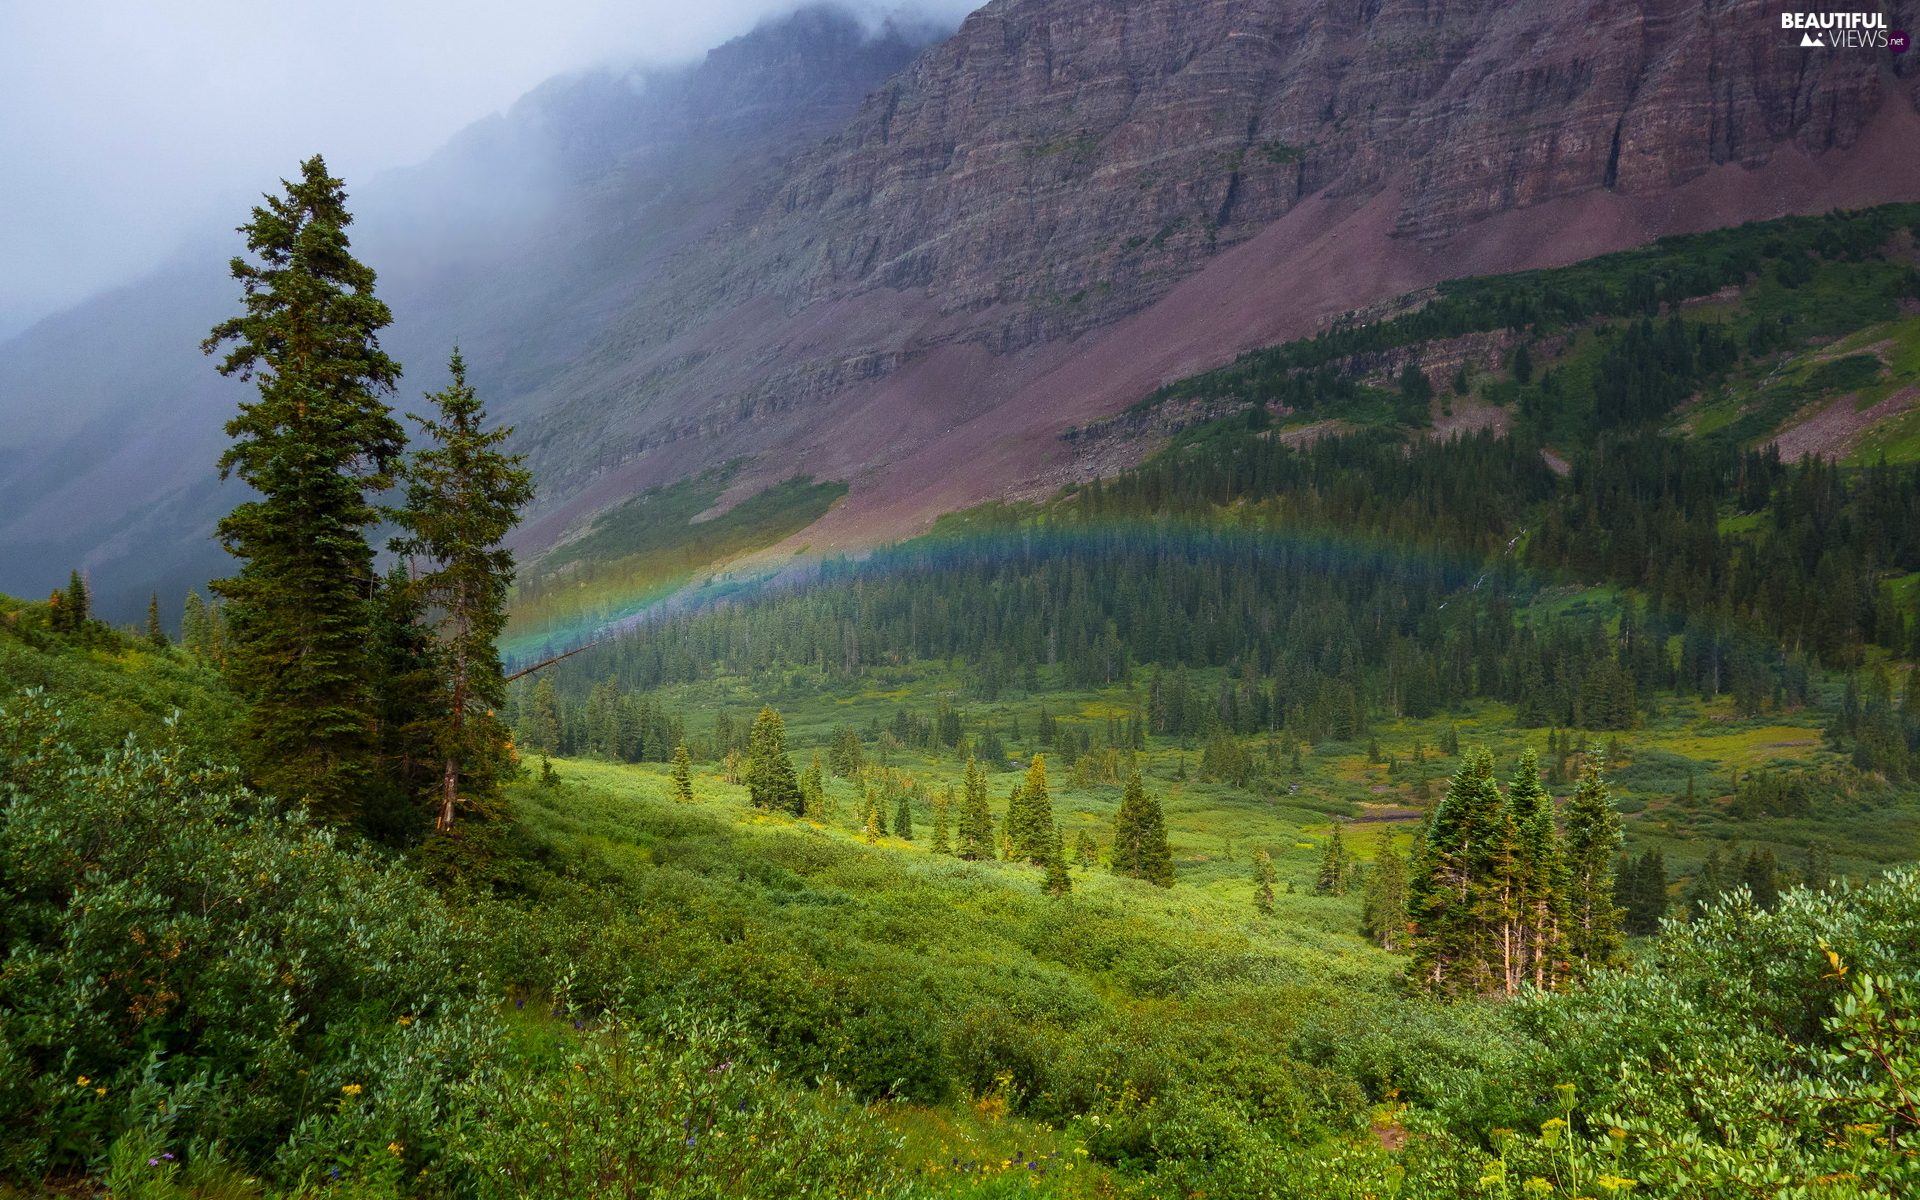 Maroon Bells, mountains, The Hills, trees, Colorado, The United States, Bush, Great Rainbows, viewes